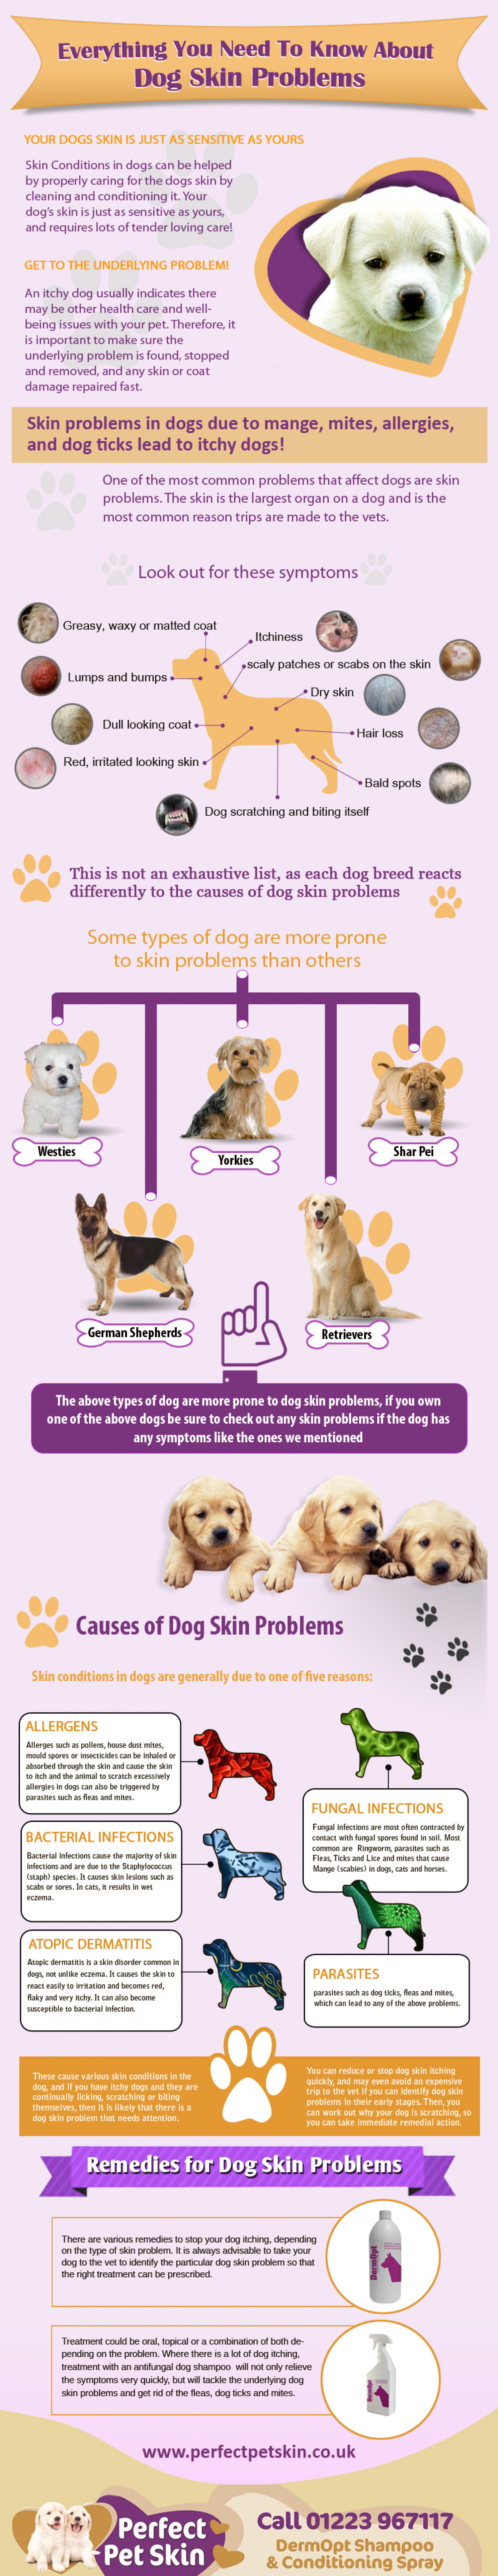 Everything You Need To Know About Dog Skin Problems Infographic